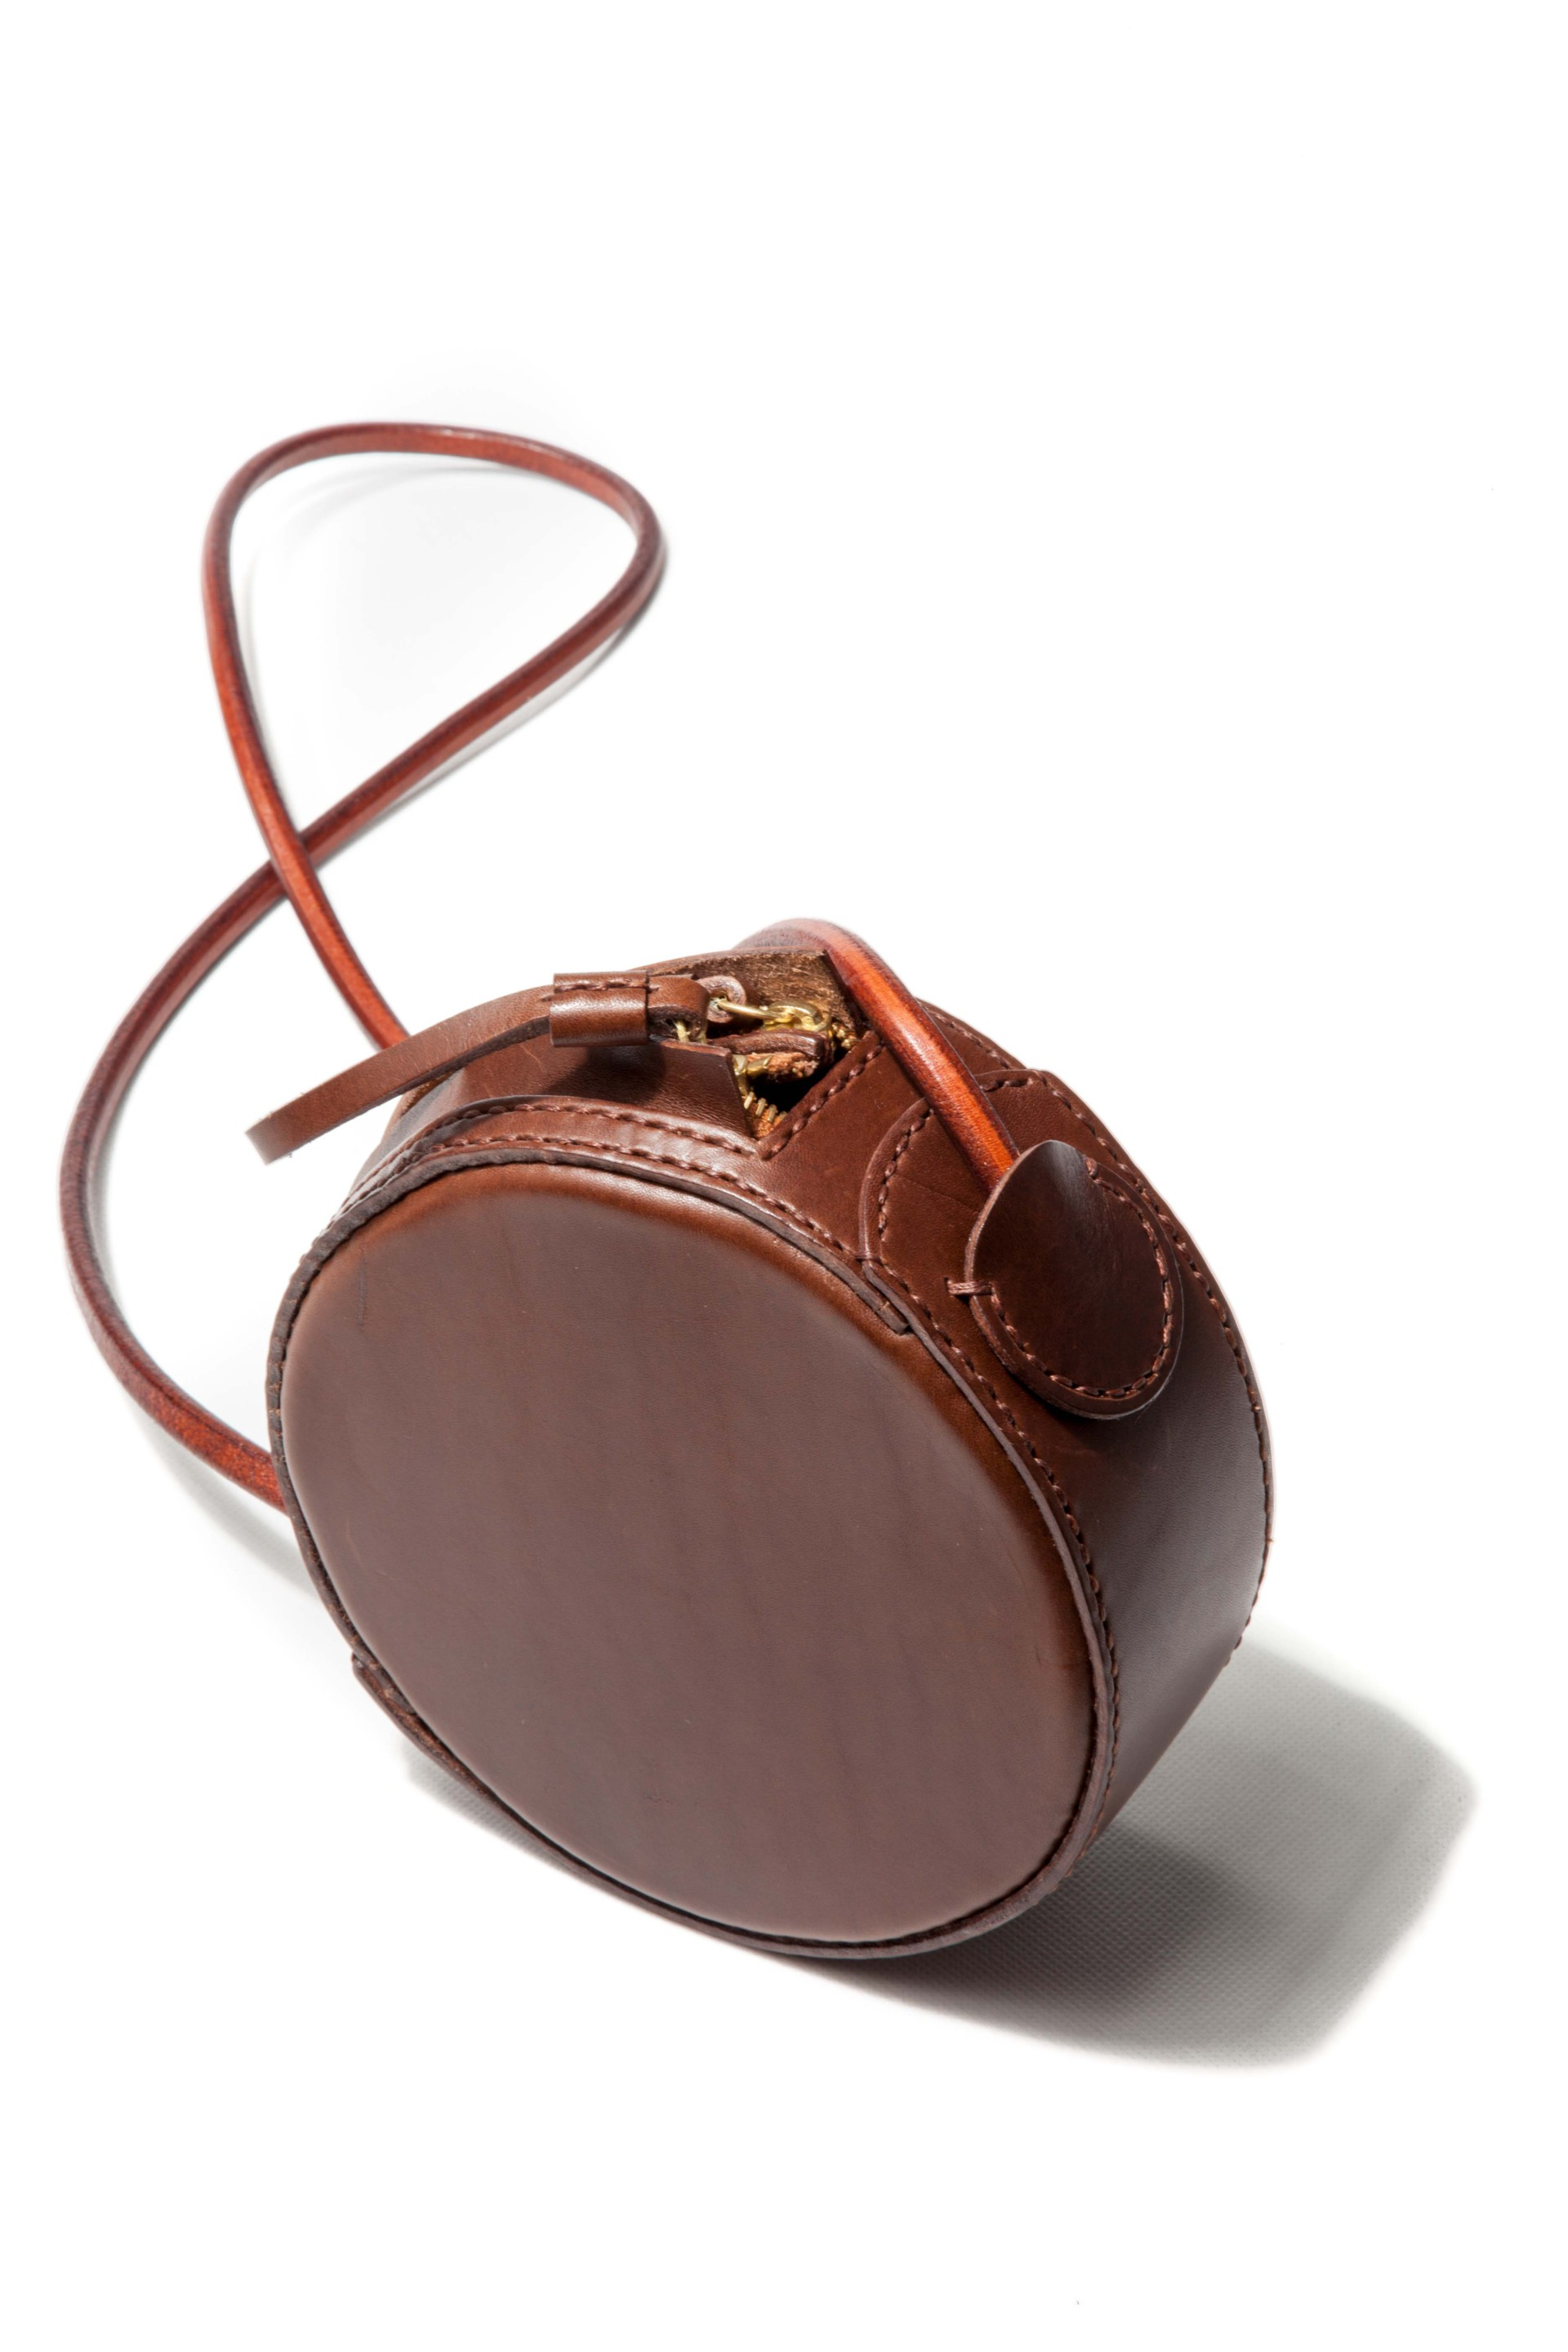 LUBOCHKA El Redondo Bag Brown 22